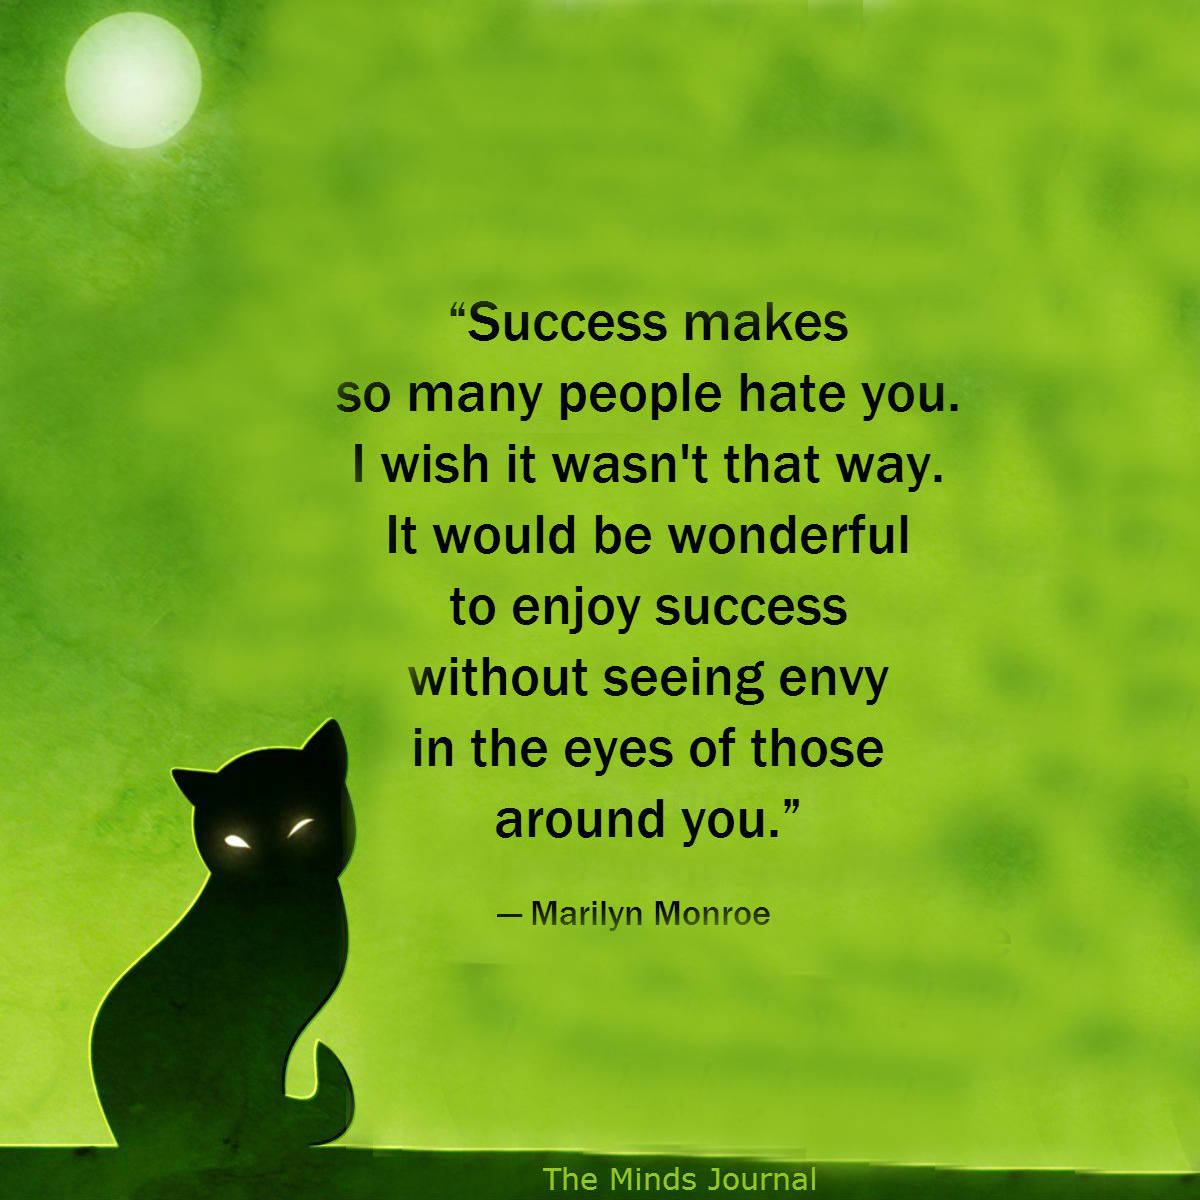 Success makes people hate you